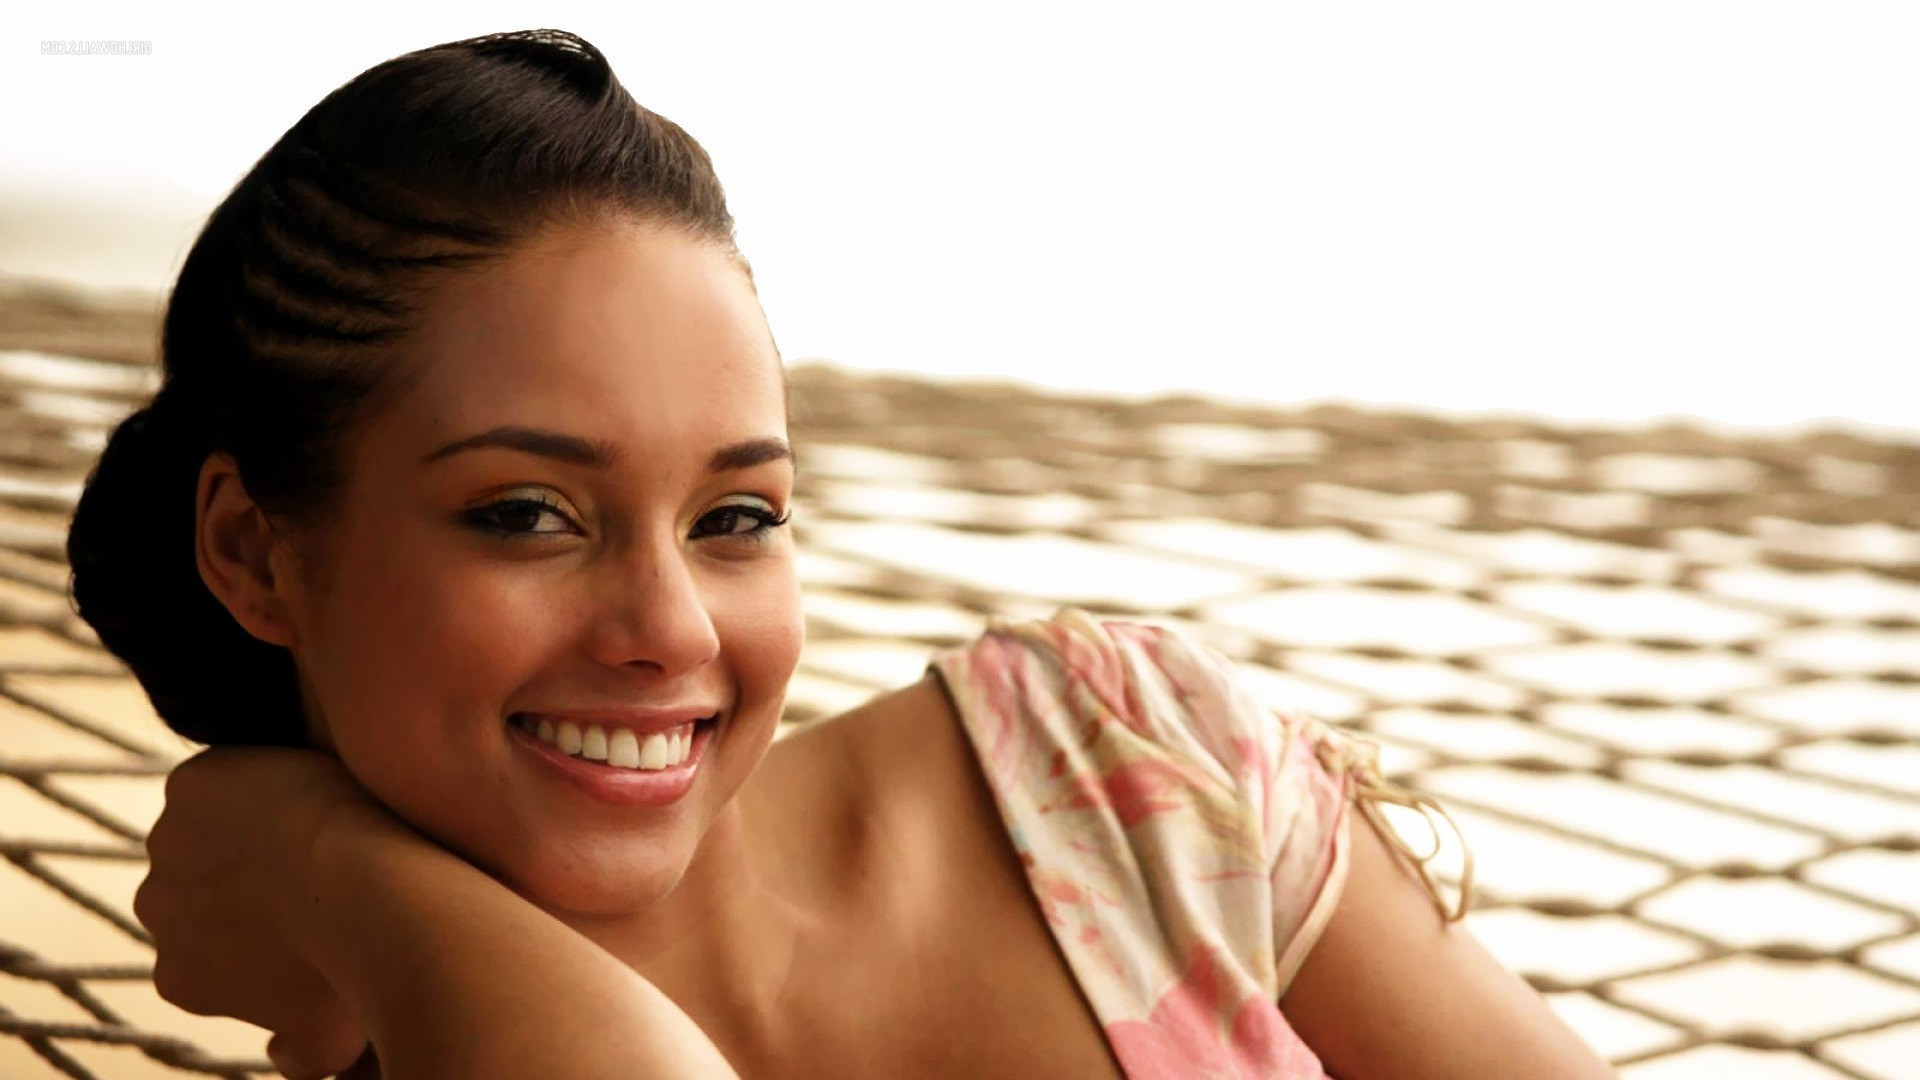 women Brunette Face Smiling Alicia Keys Wallpapers HD